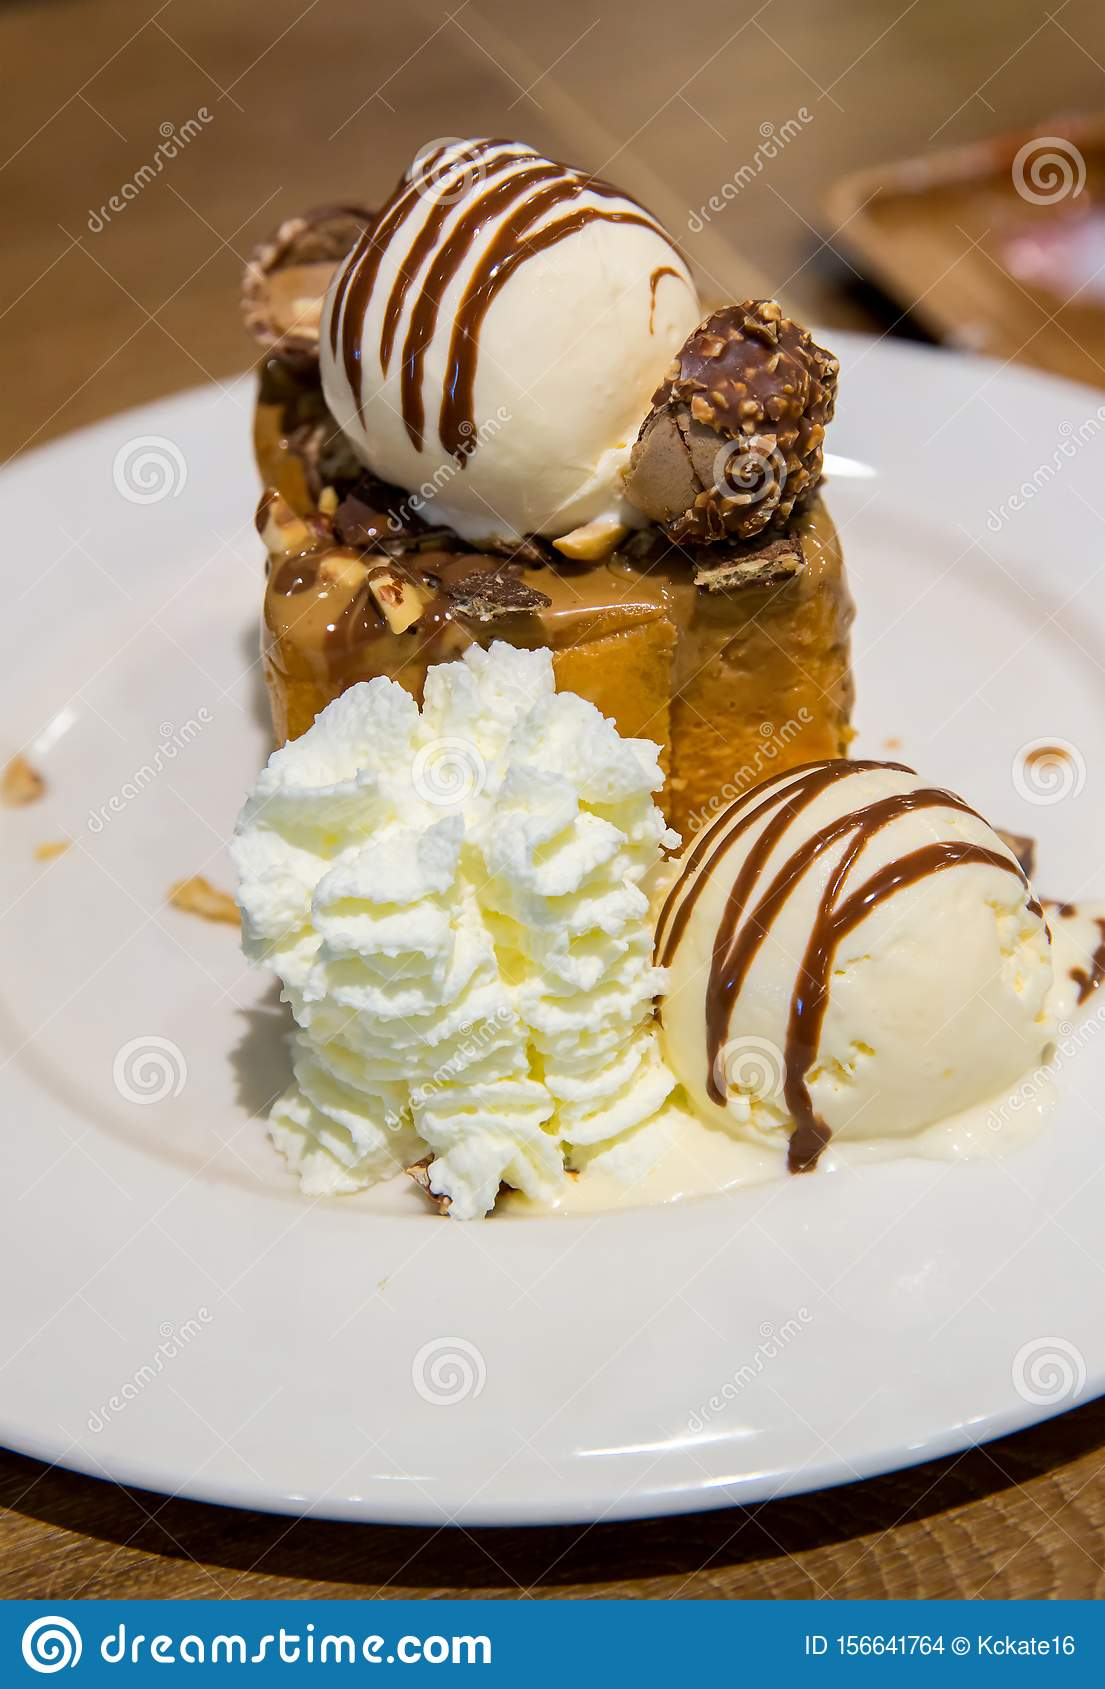 Honey toast with vanilla ice cream and whiping cream topped with chocolate sauce on white dish. sweets bread and dessert.